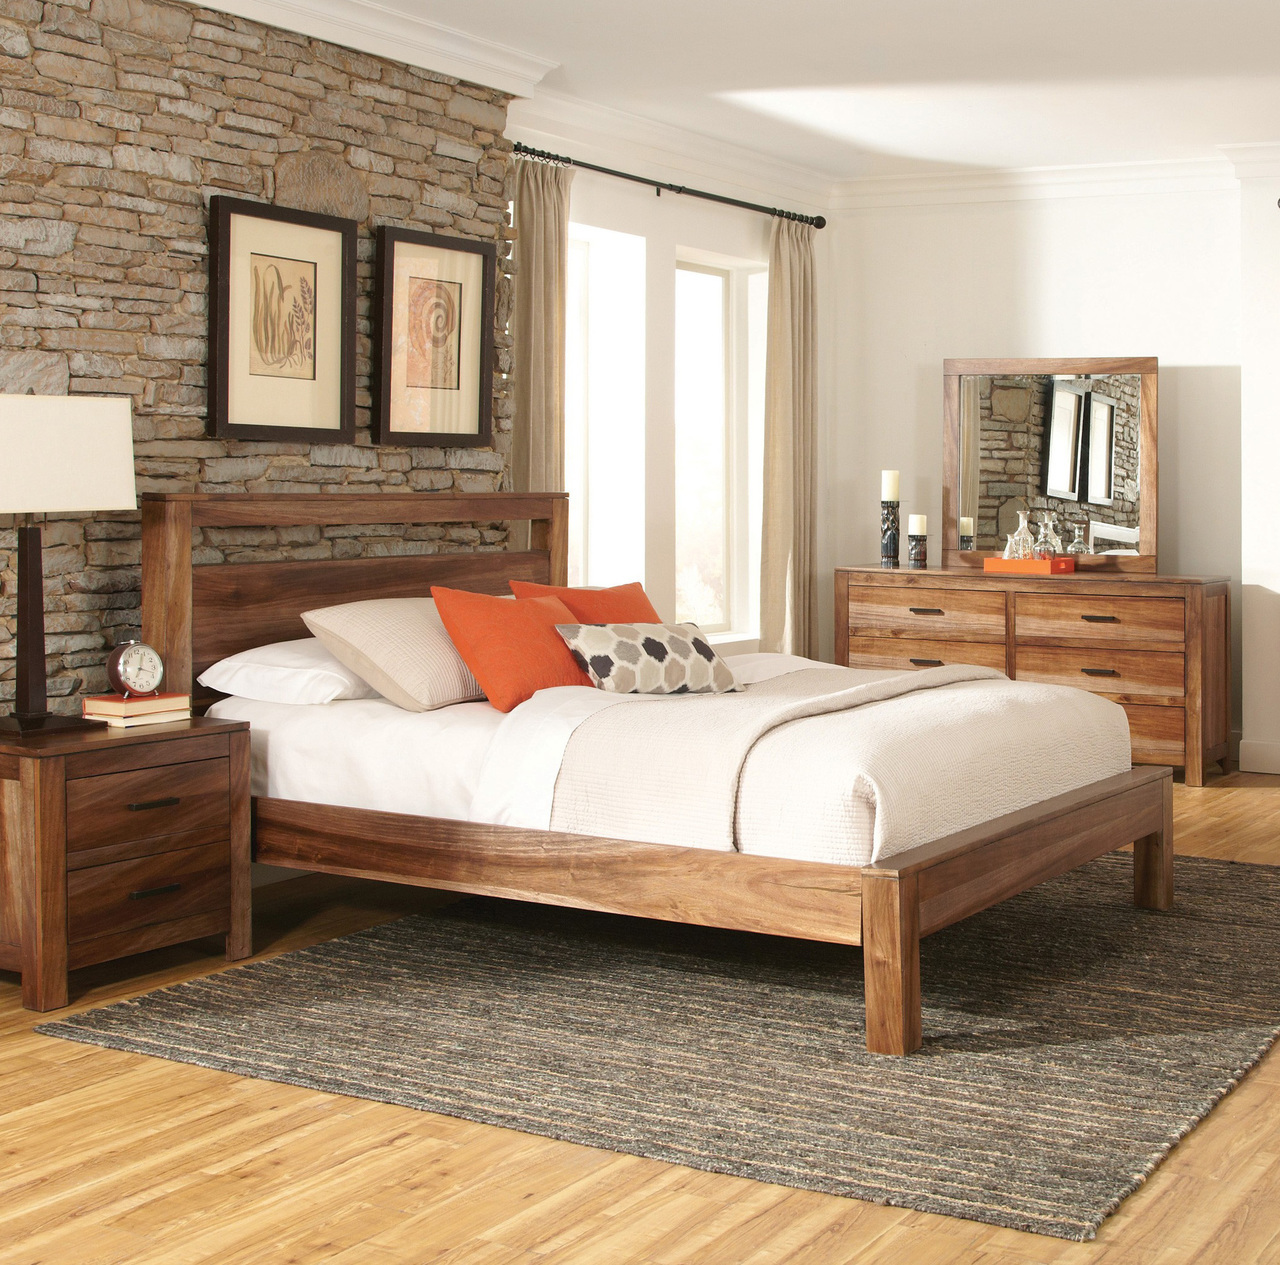 10 Great Platform Beds For Any Bedroom Style